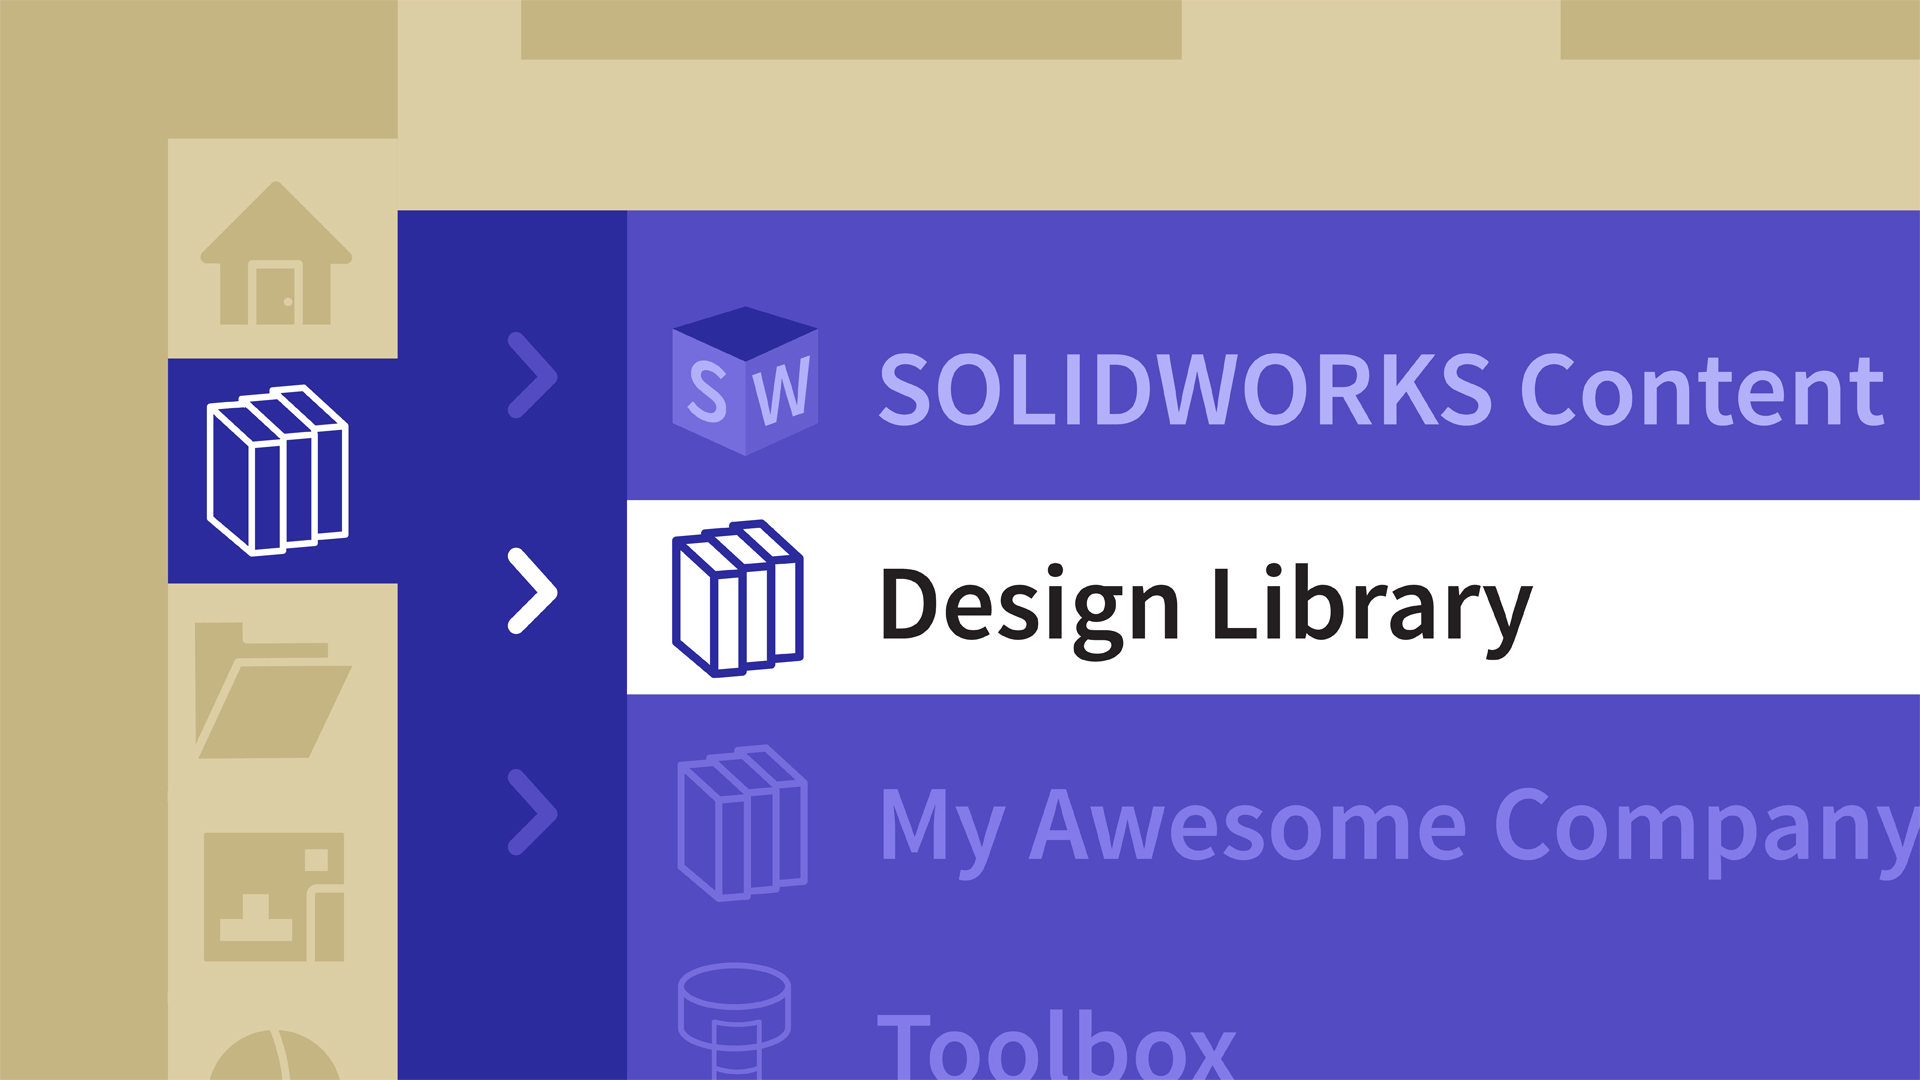 SOLIDWORKS: Managing the Design Library